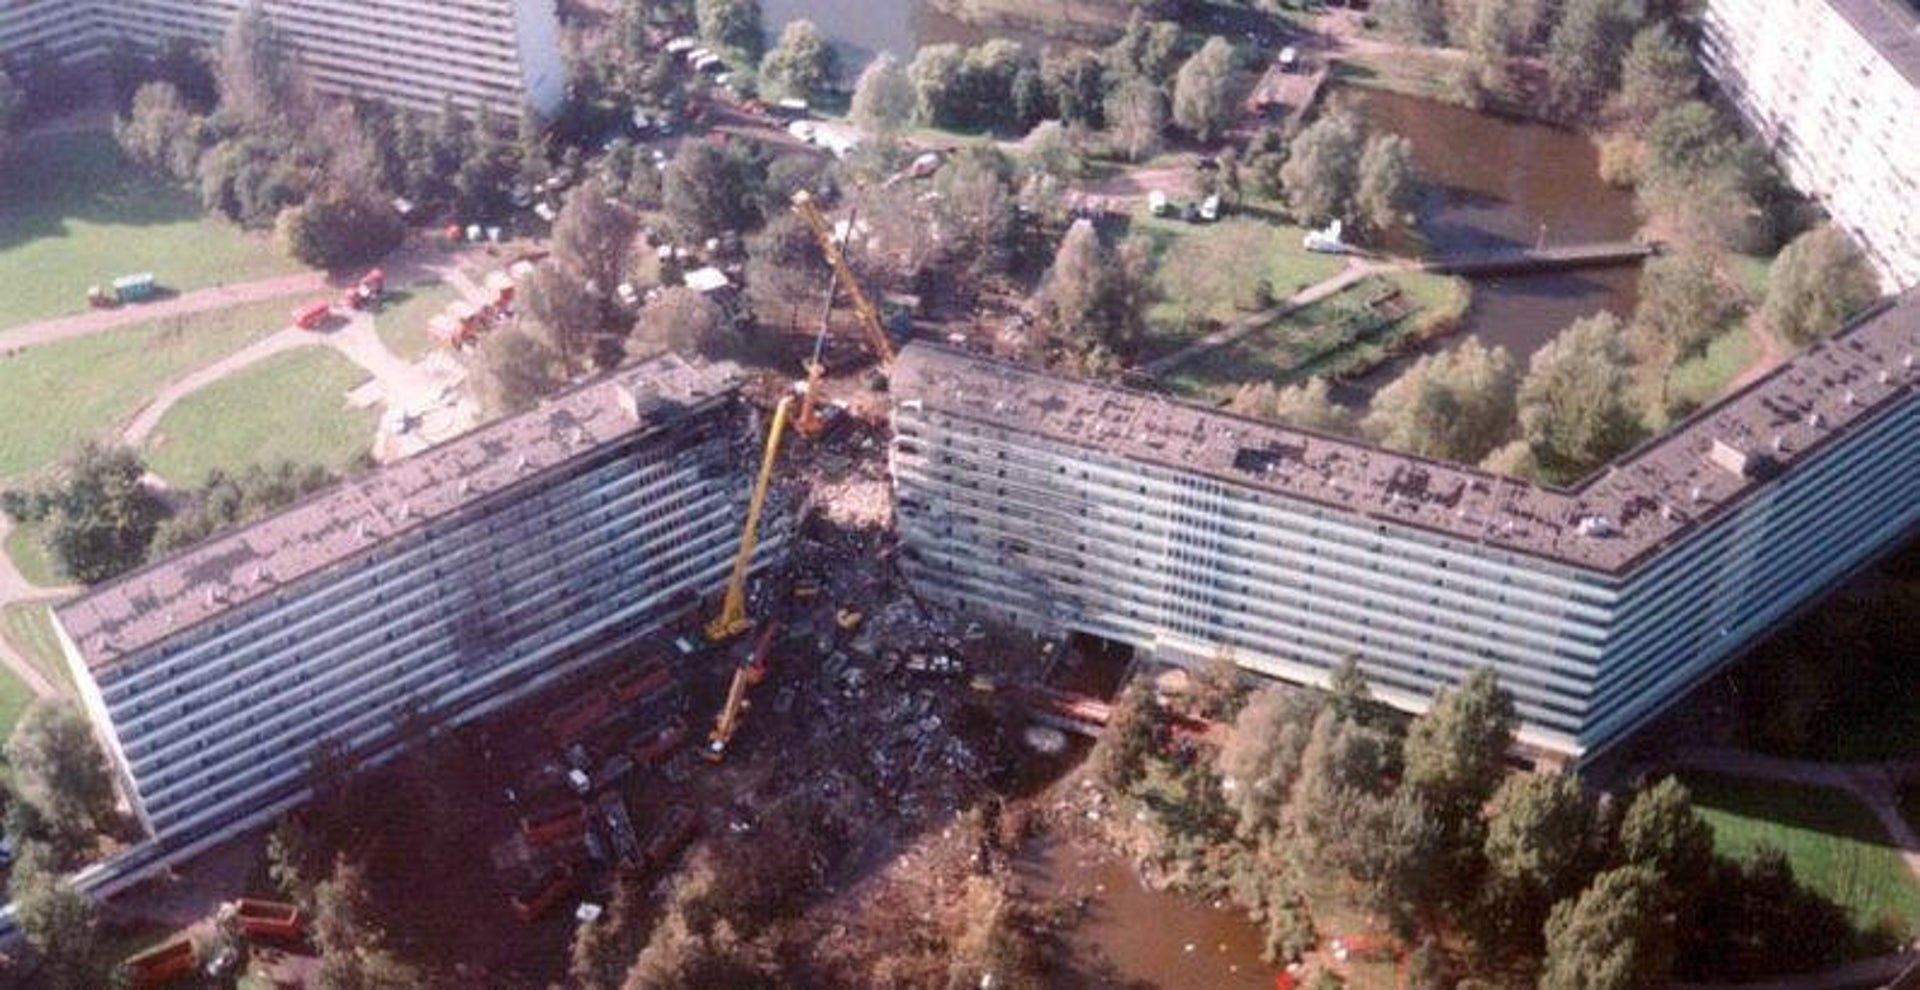 Aftermath of the disaster after El Al Flight 1862 crashed into an Amsterdam apartment block in October 1992.